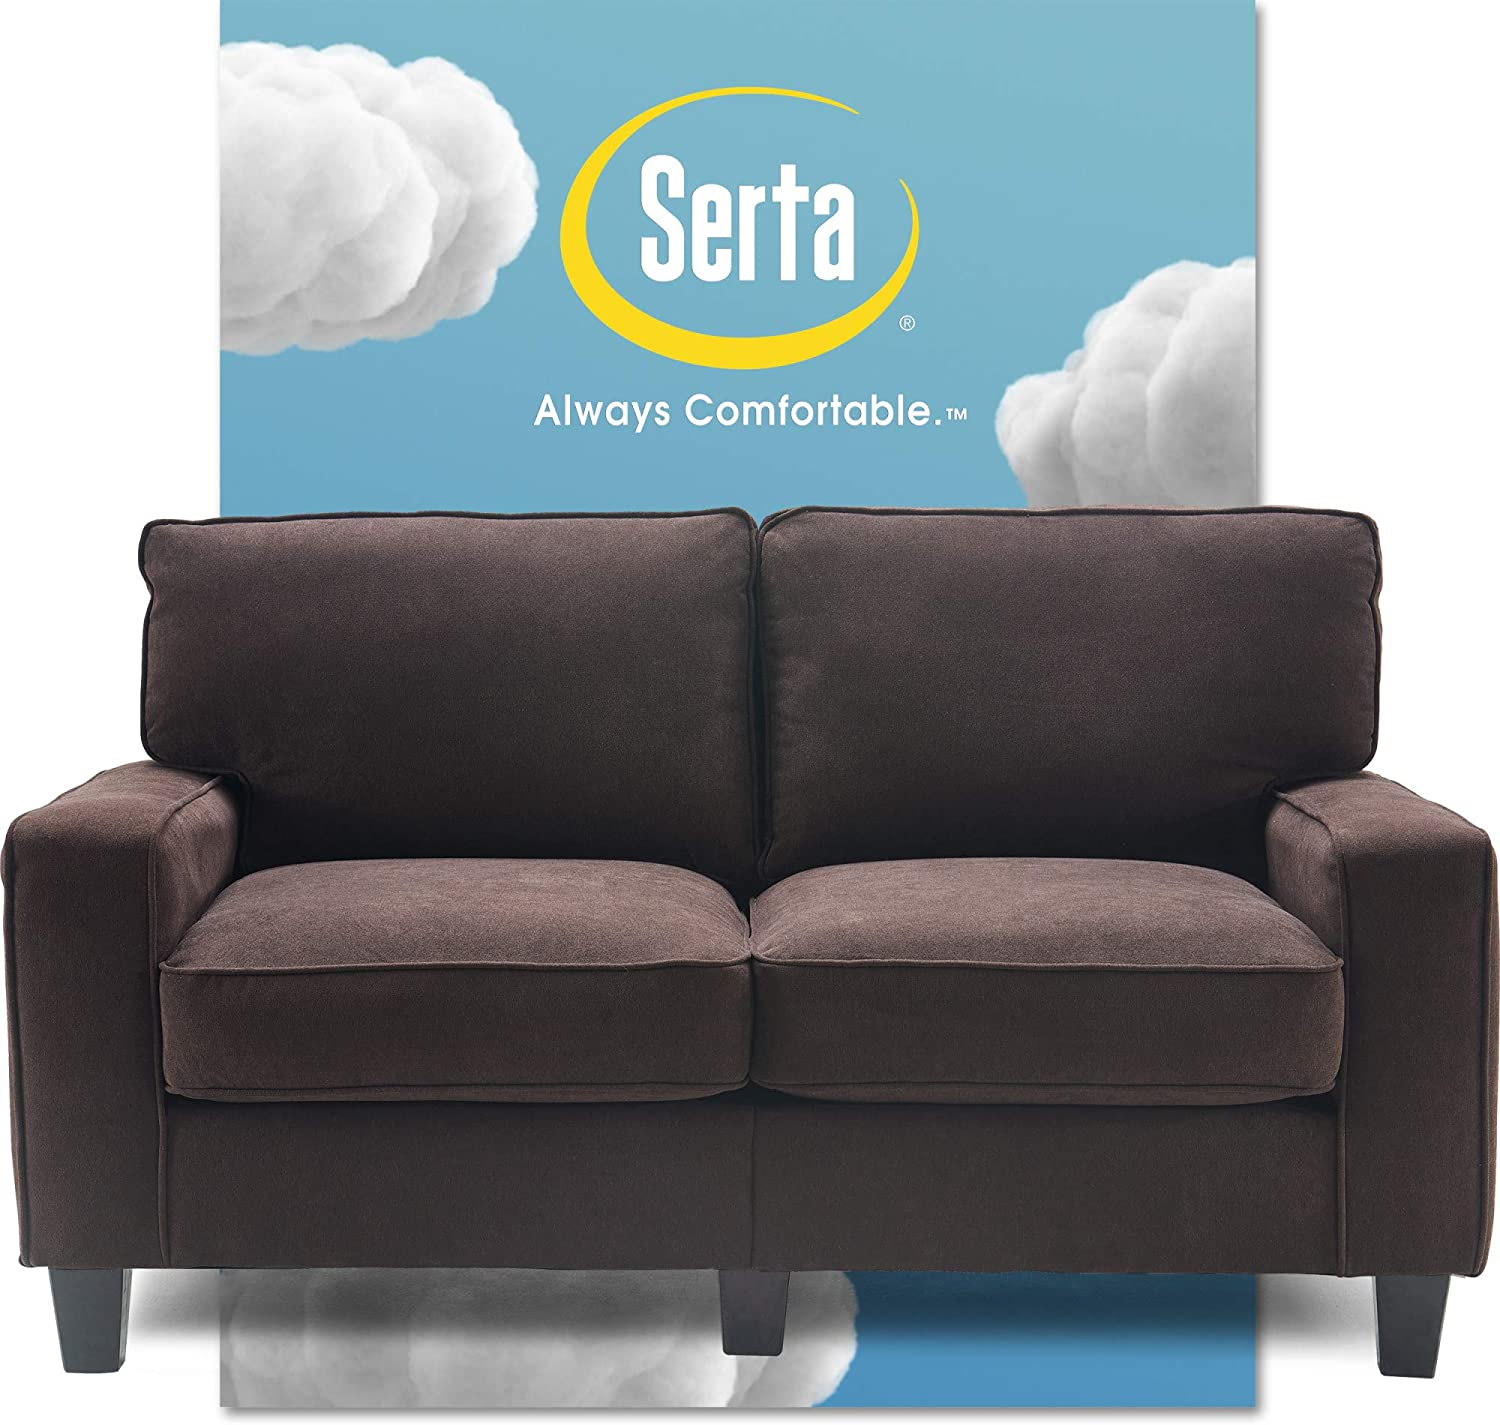 "Serta Palisades Upholstered Sofas for Living Room Modern Design Couch, Straight Arms, Soft Fabric Upholstery, Tool-Free Assembly, 61"" Loveseat, Dark Brown"